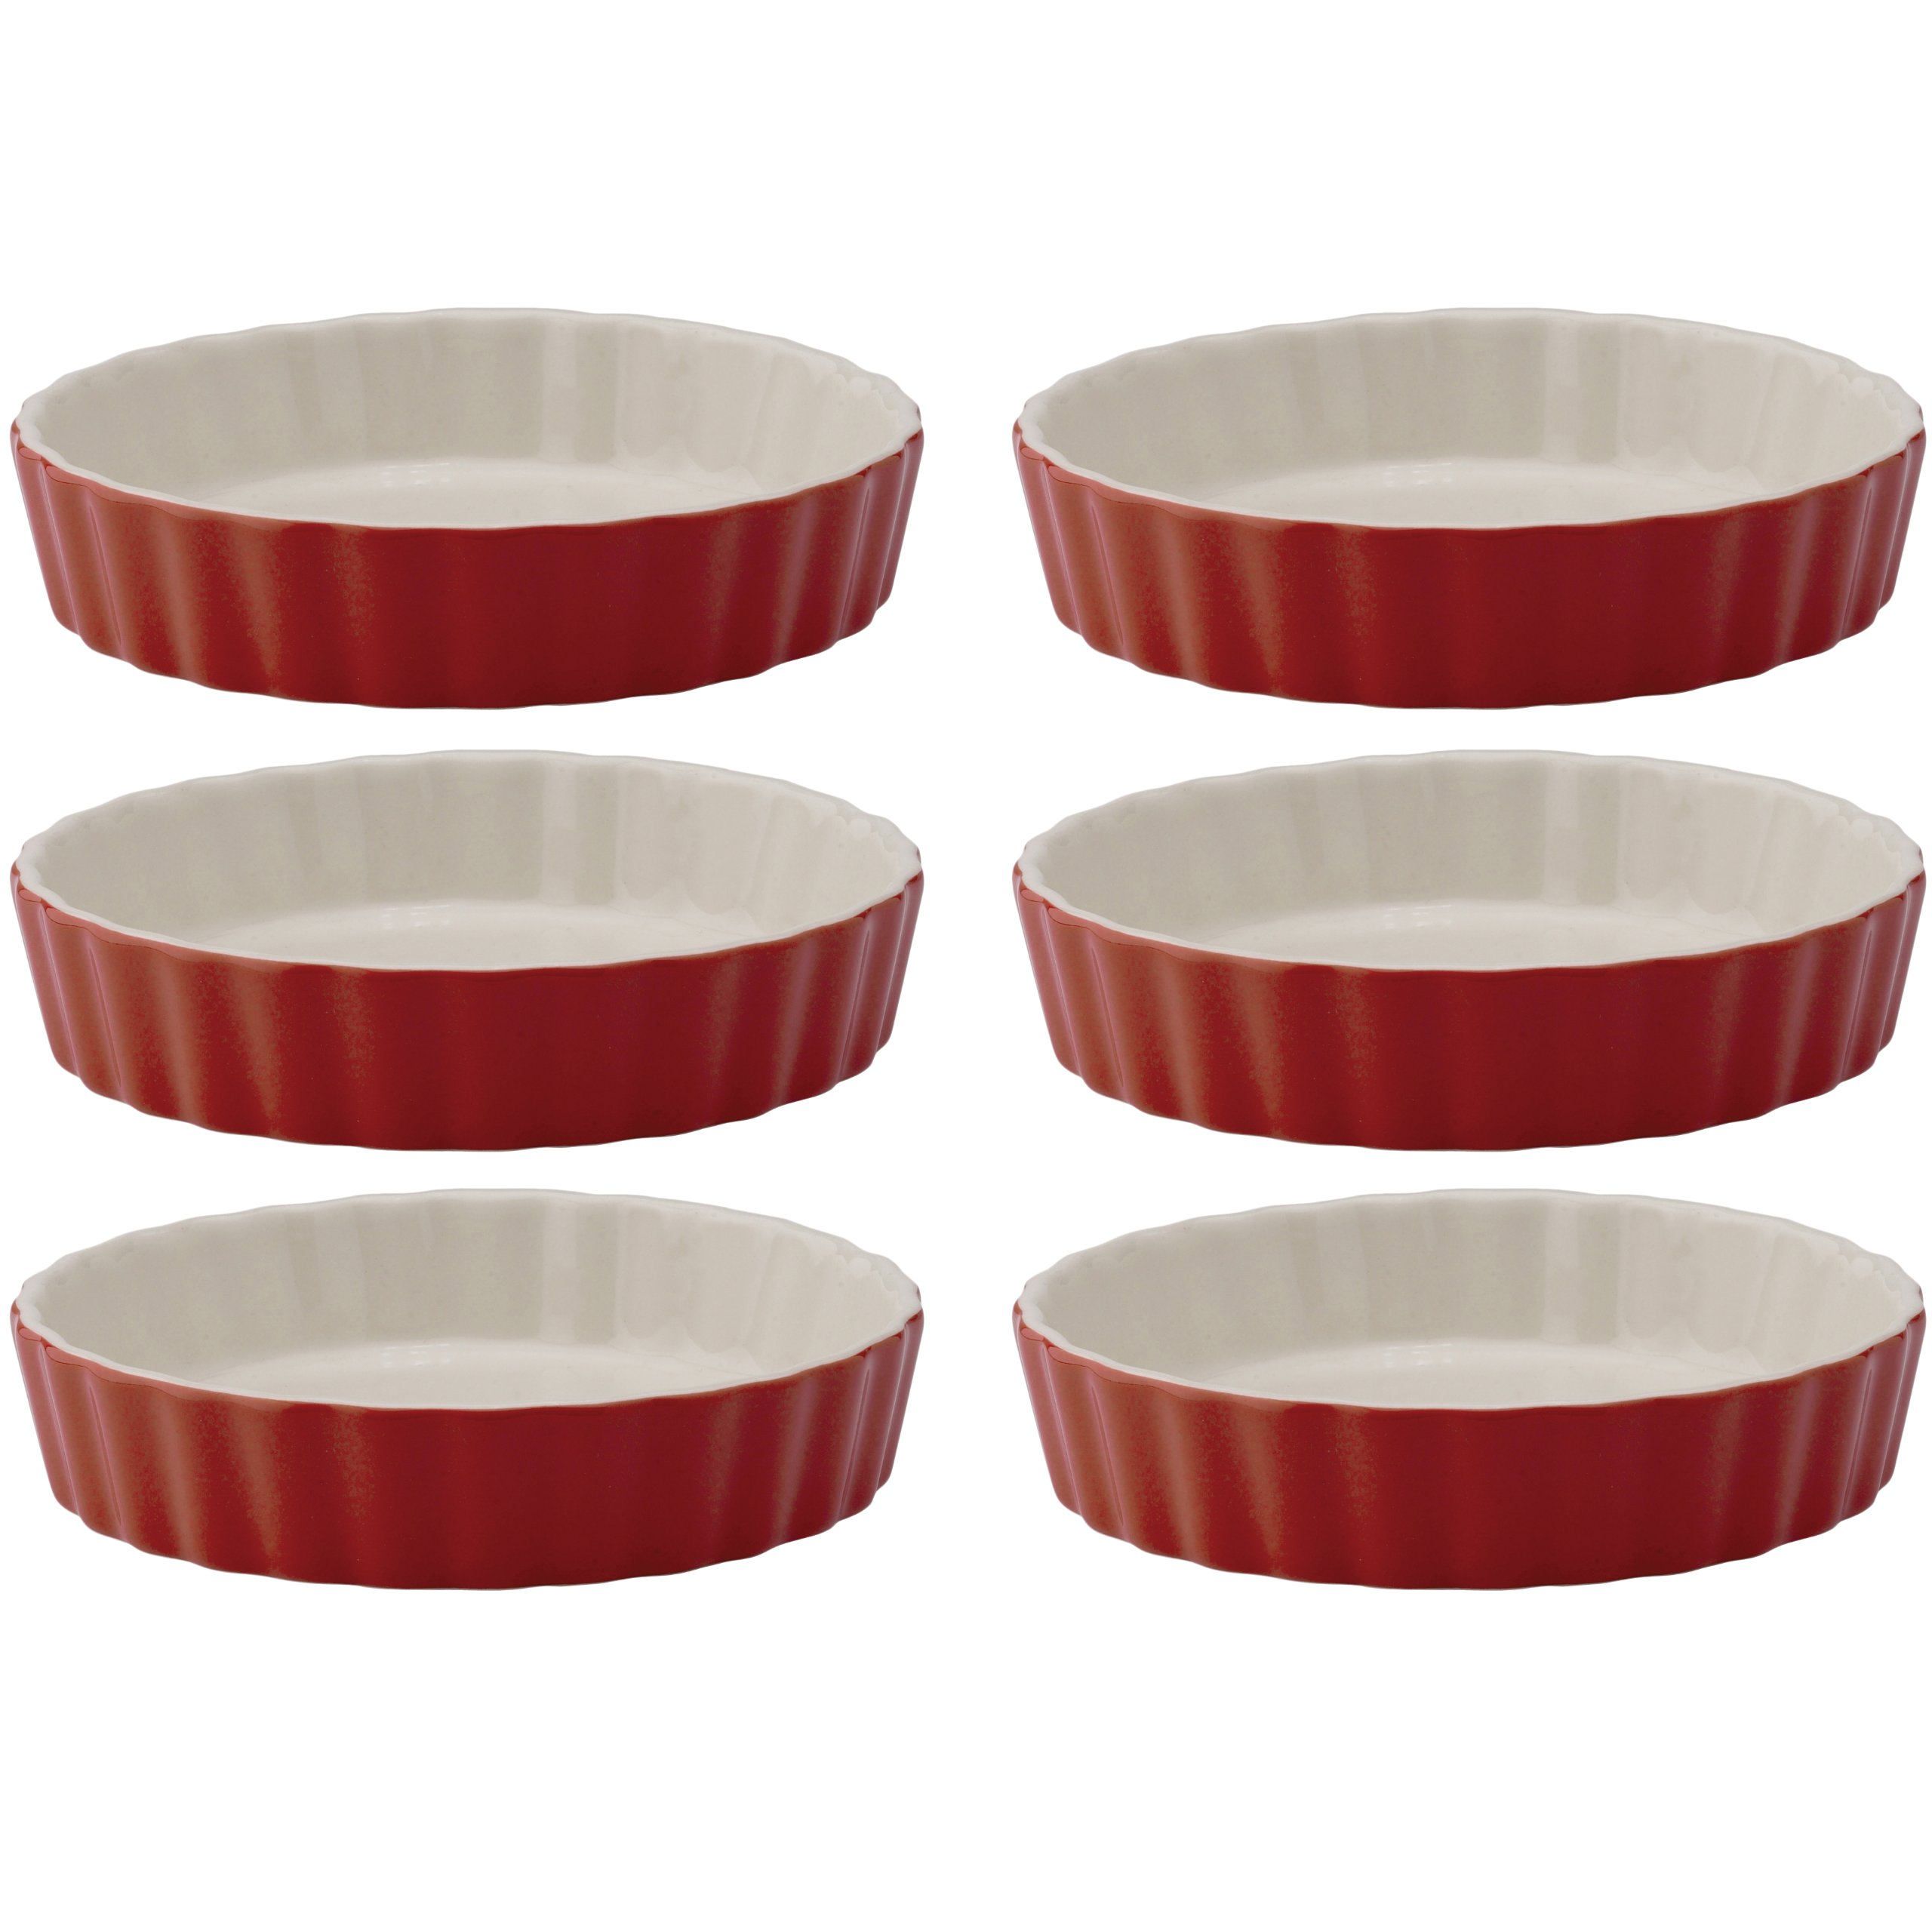 Mrs. Anderson's Baking Round Quiche Creme Brulee, Ceramic Earthenware, Rose, Set of 6, 5-Inches x 1-Inch